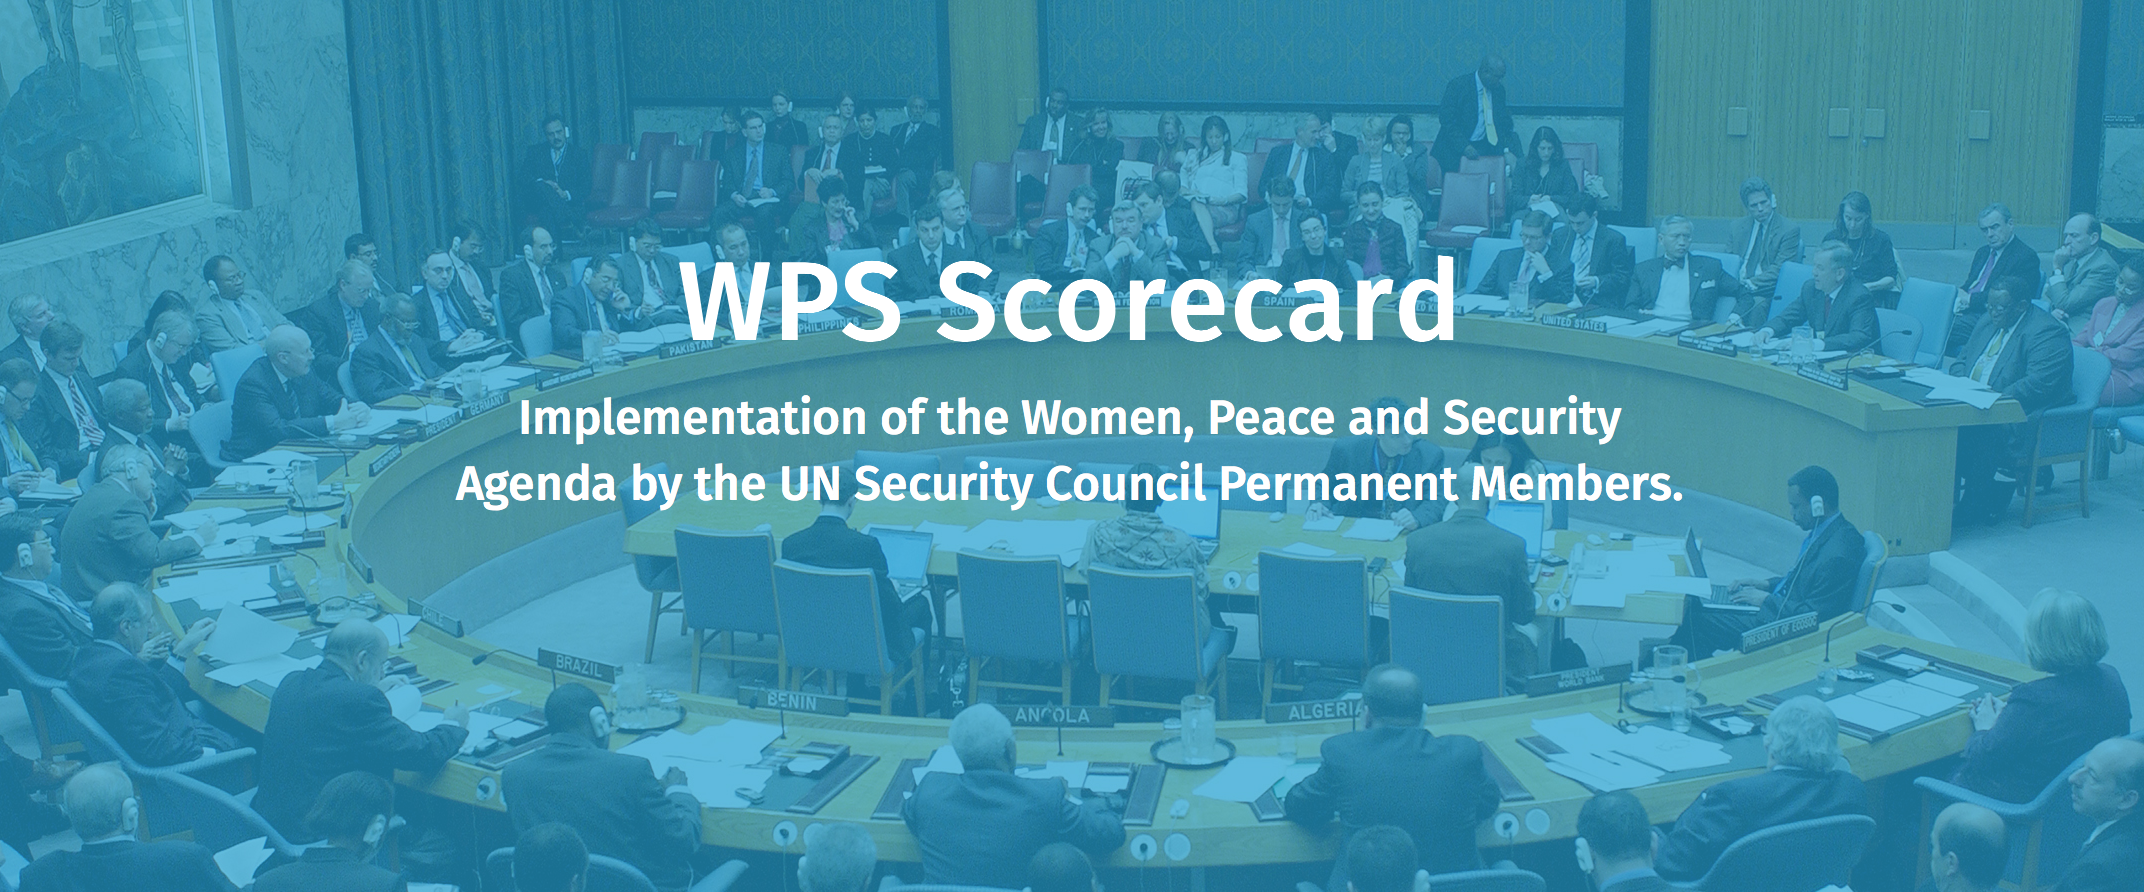 Can the Permanent Members of the Security Council Lead the World's Journey to Sustainable Peace and Gender Justice?